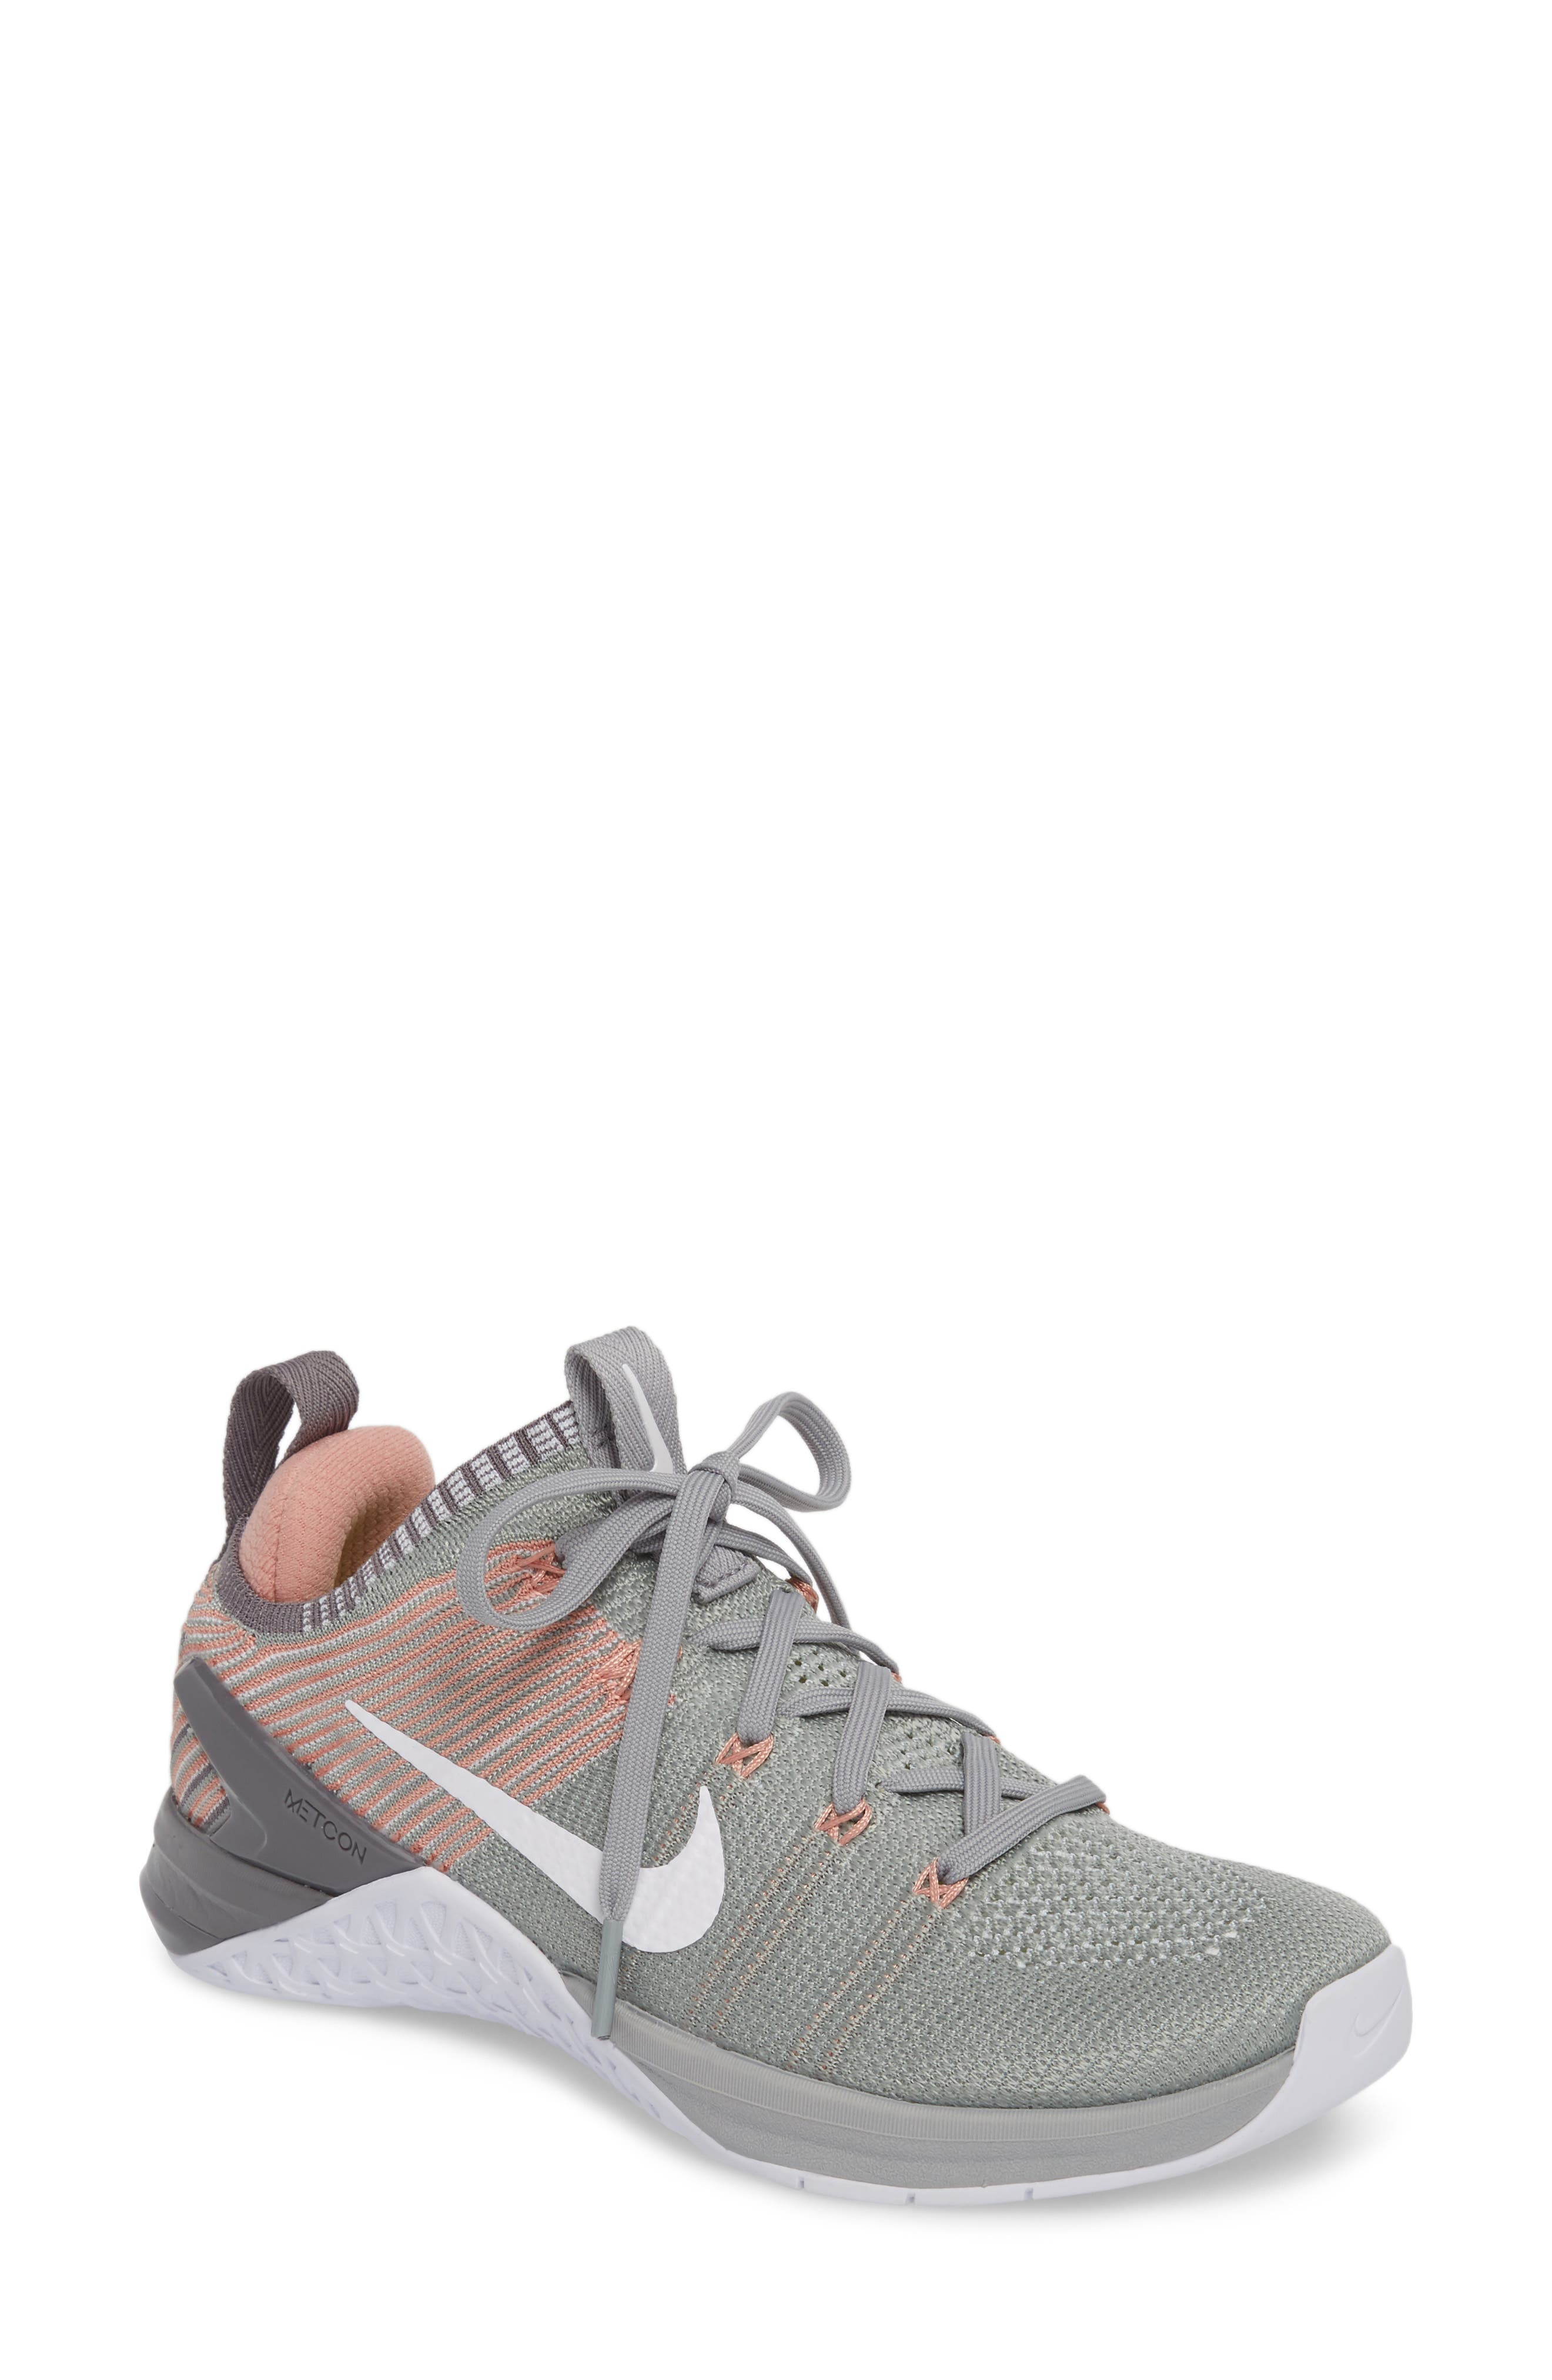 Nike Metcon DSX Flyknit 2 Training Shoe (Women)